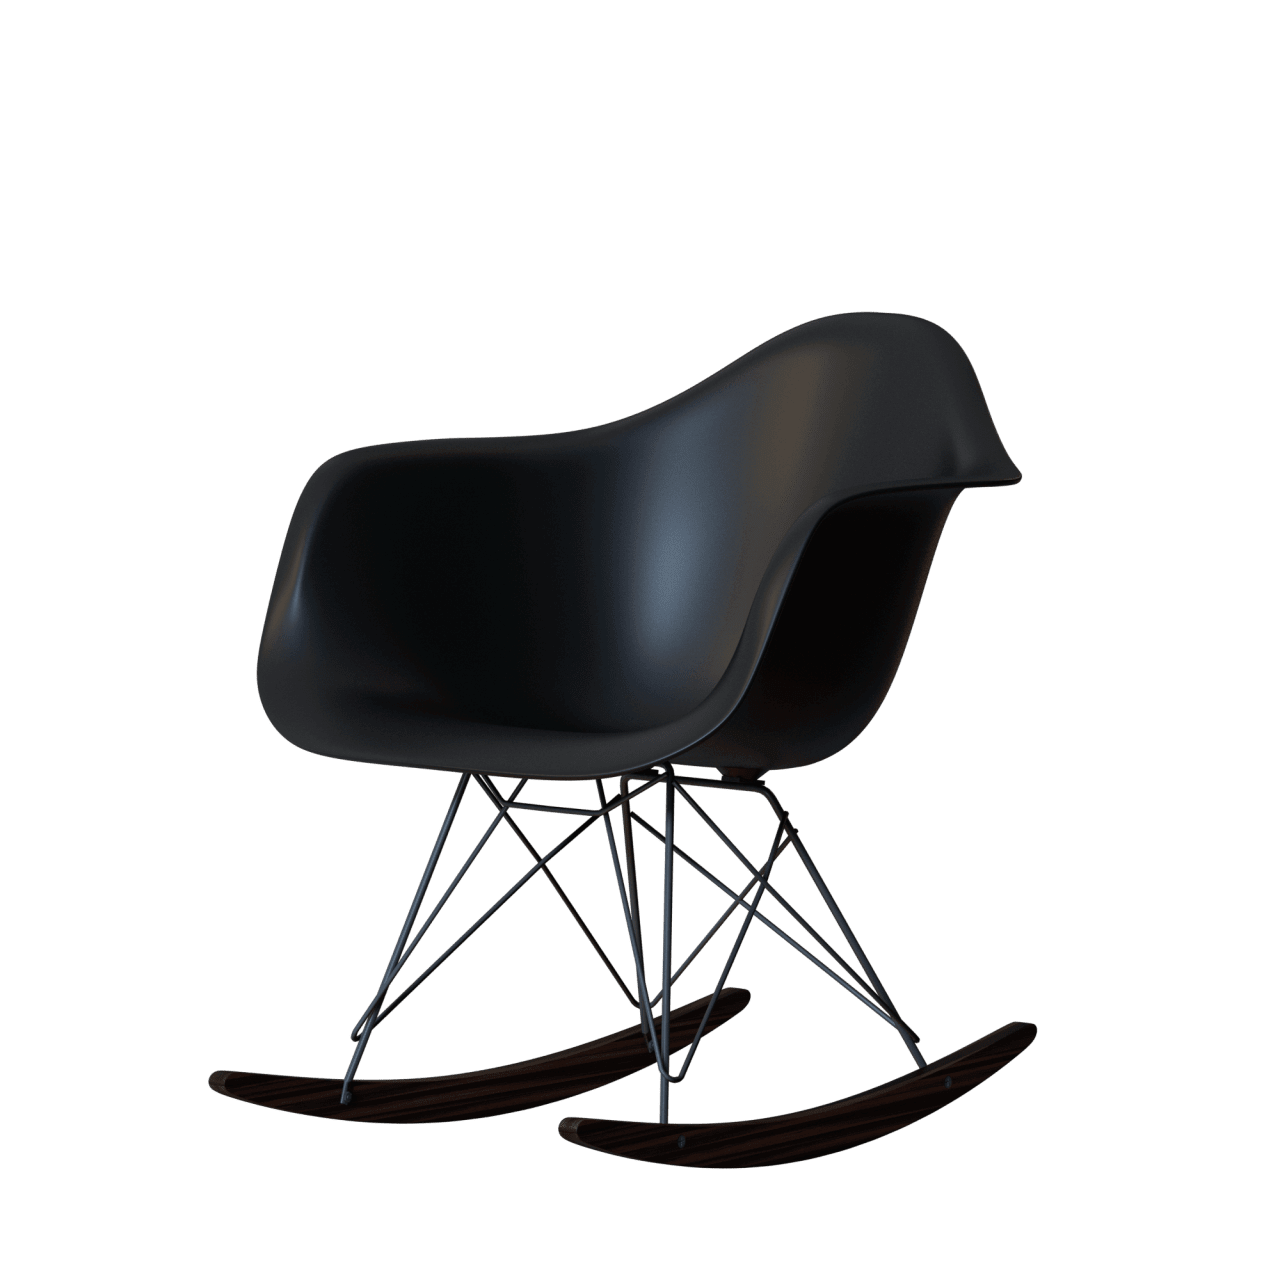 RAR Eames Plastic Chair Schaukelstuhl alte Version